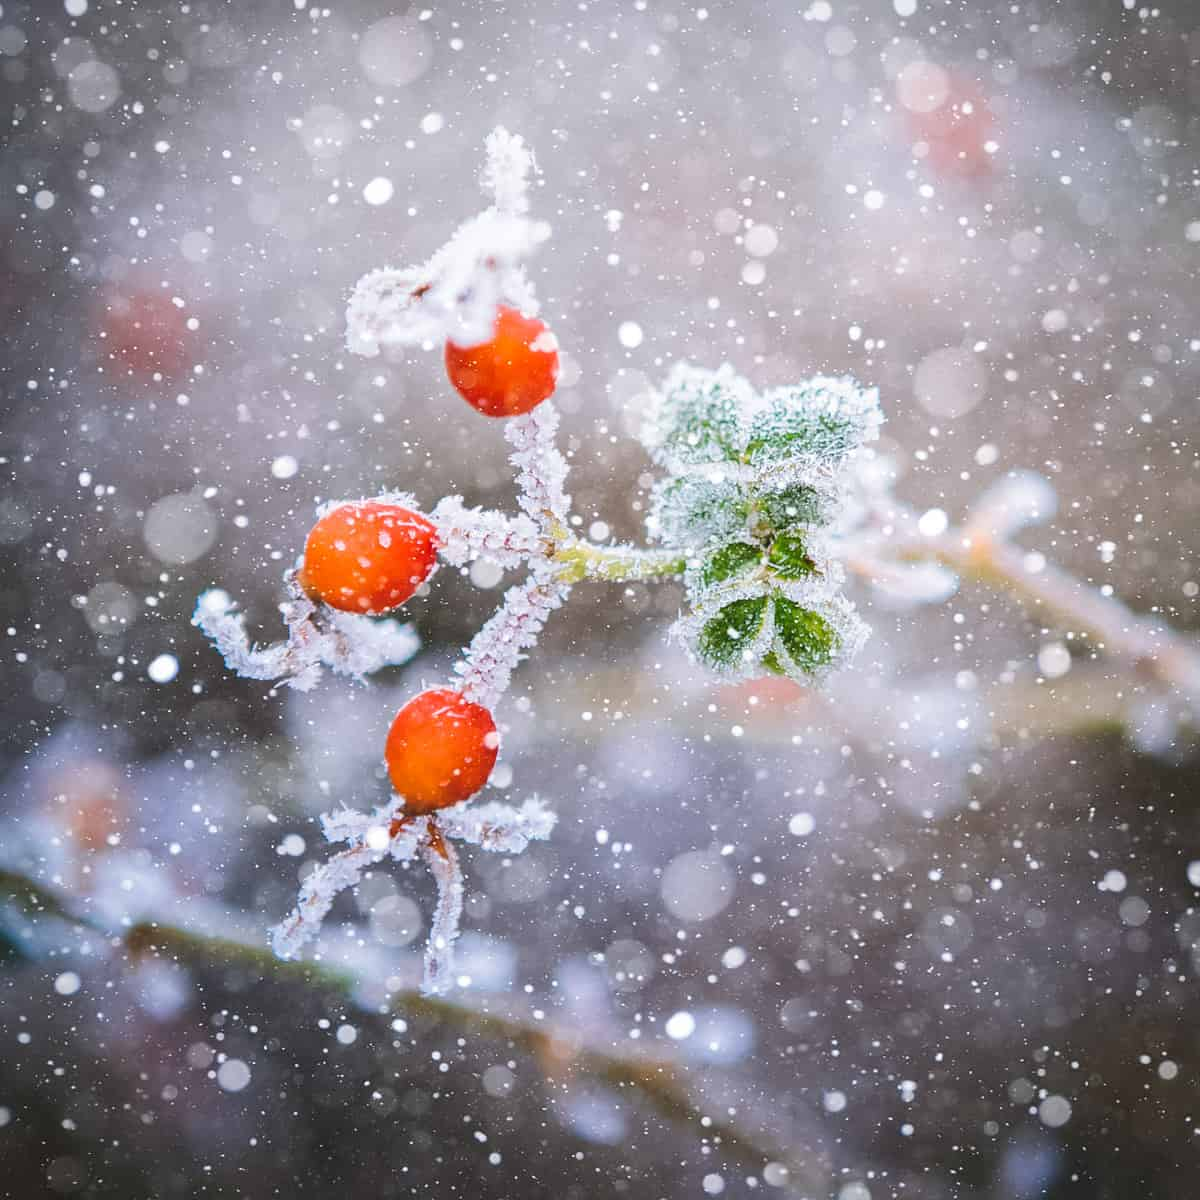 snow falling on rose hips